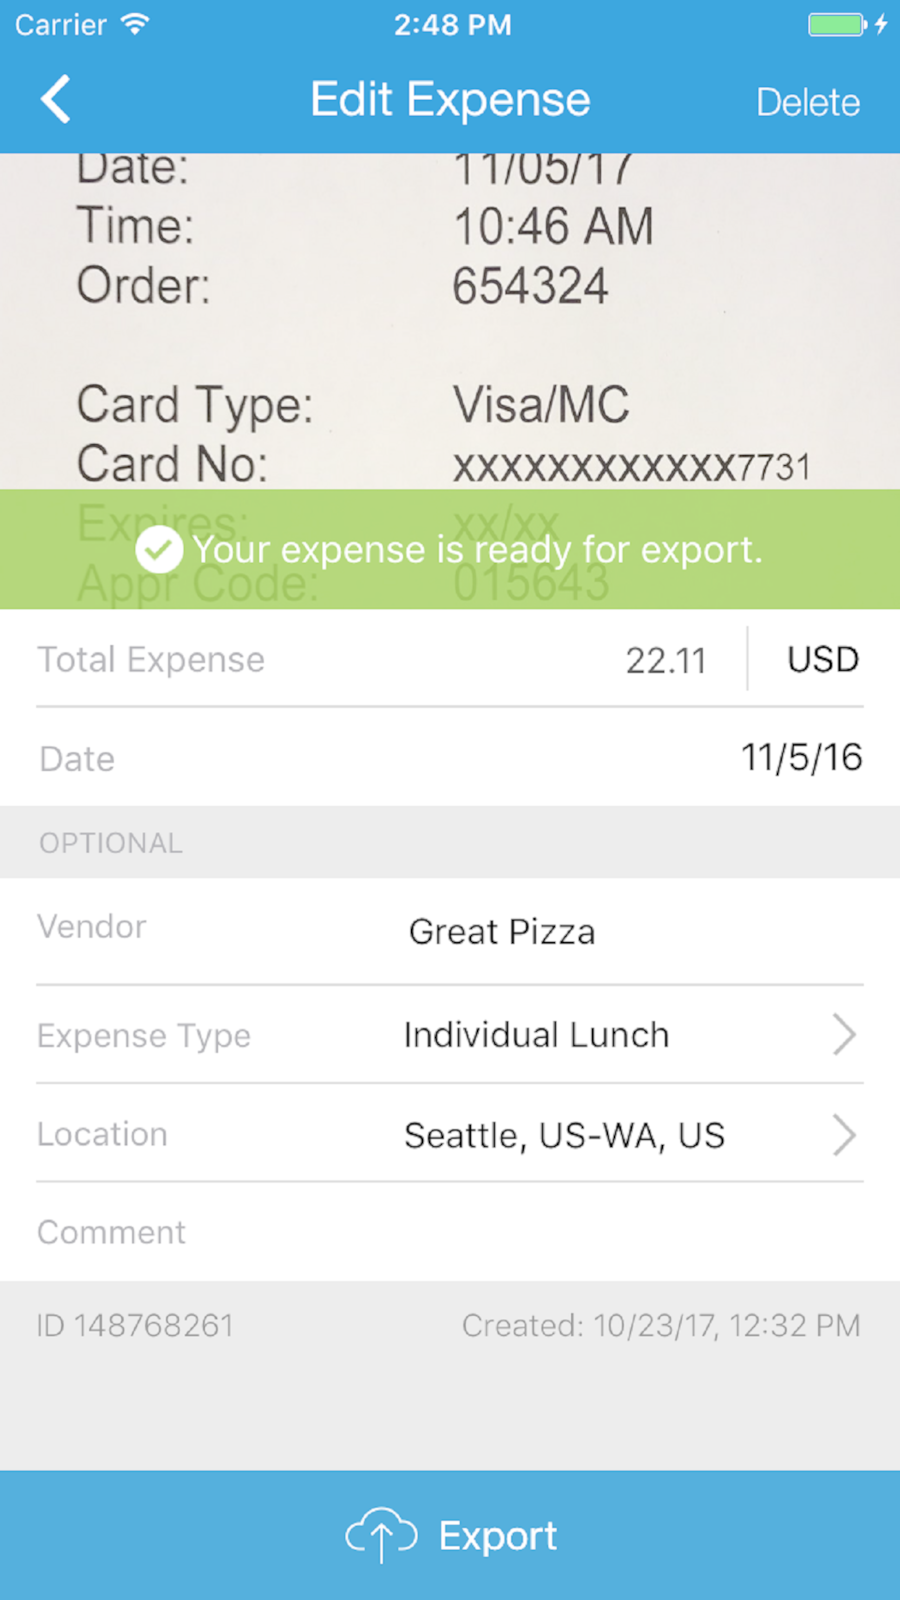 expenseit from sap concur ios travel app apps app store ipod [ 900 x 1600 Pixel ]